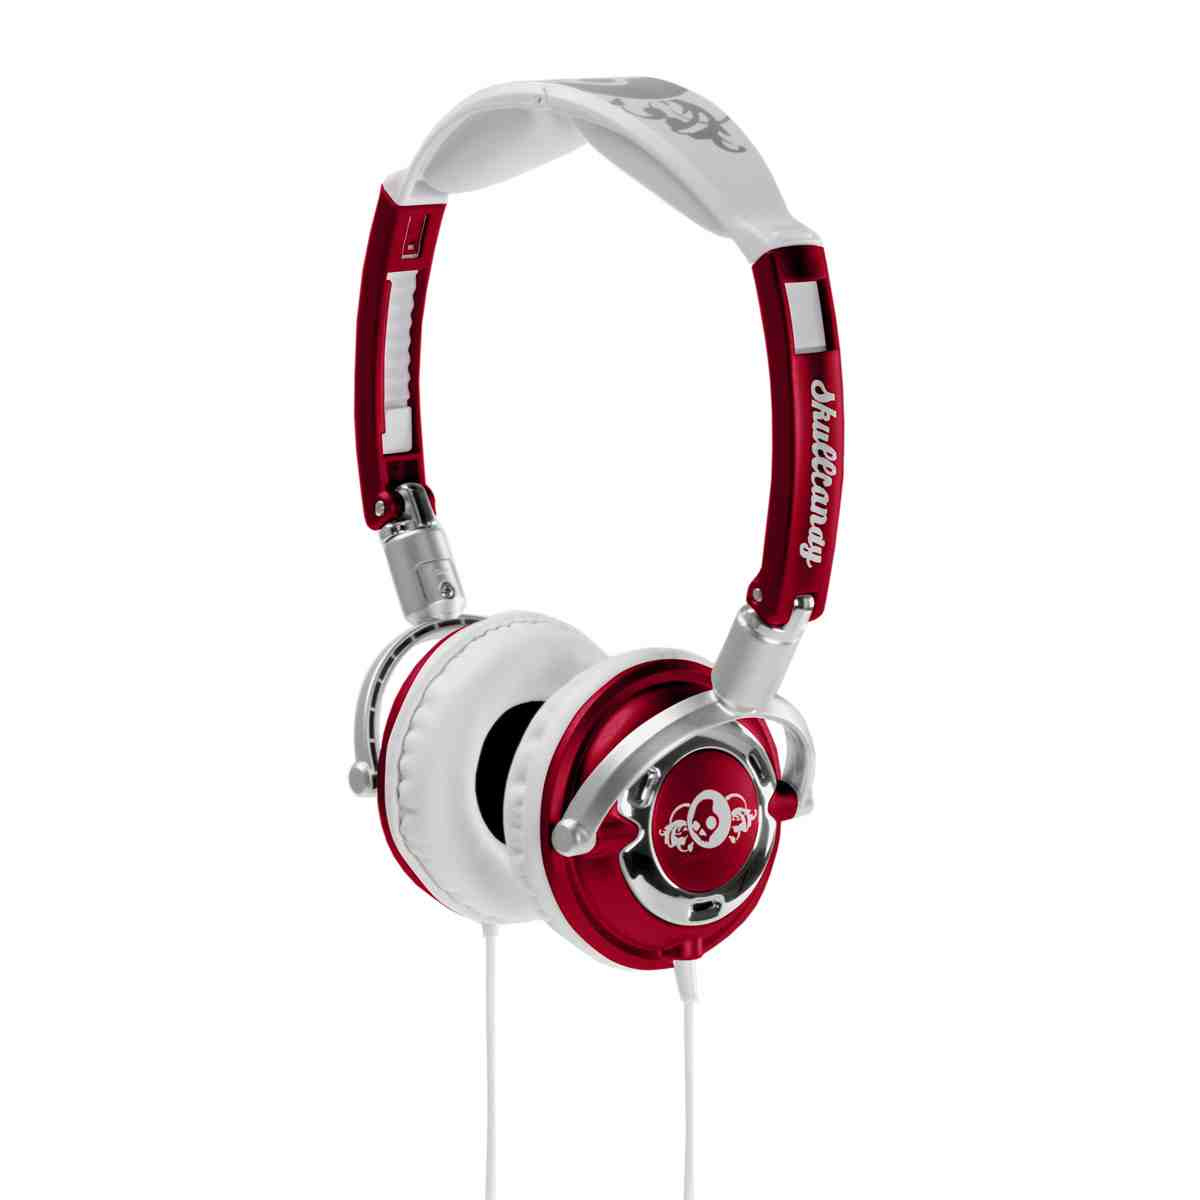 Skullcandy Headphones The Sounds& Styles for Christmas